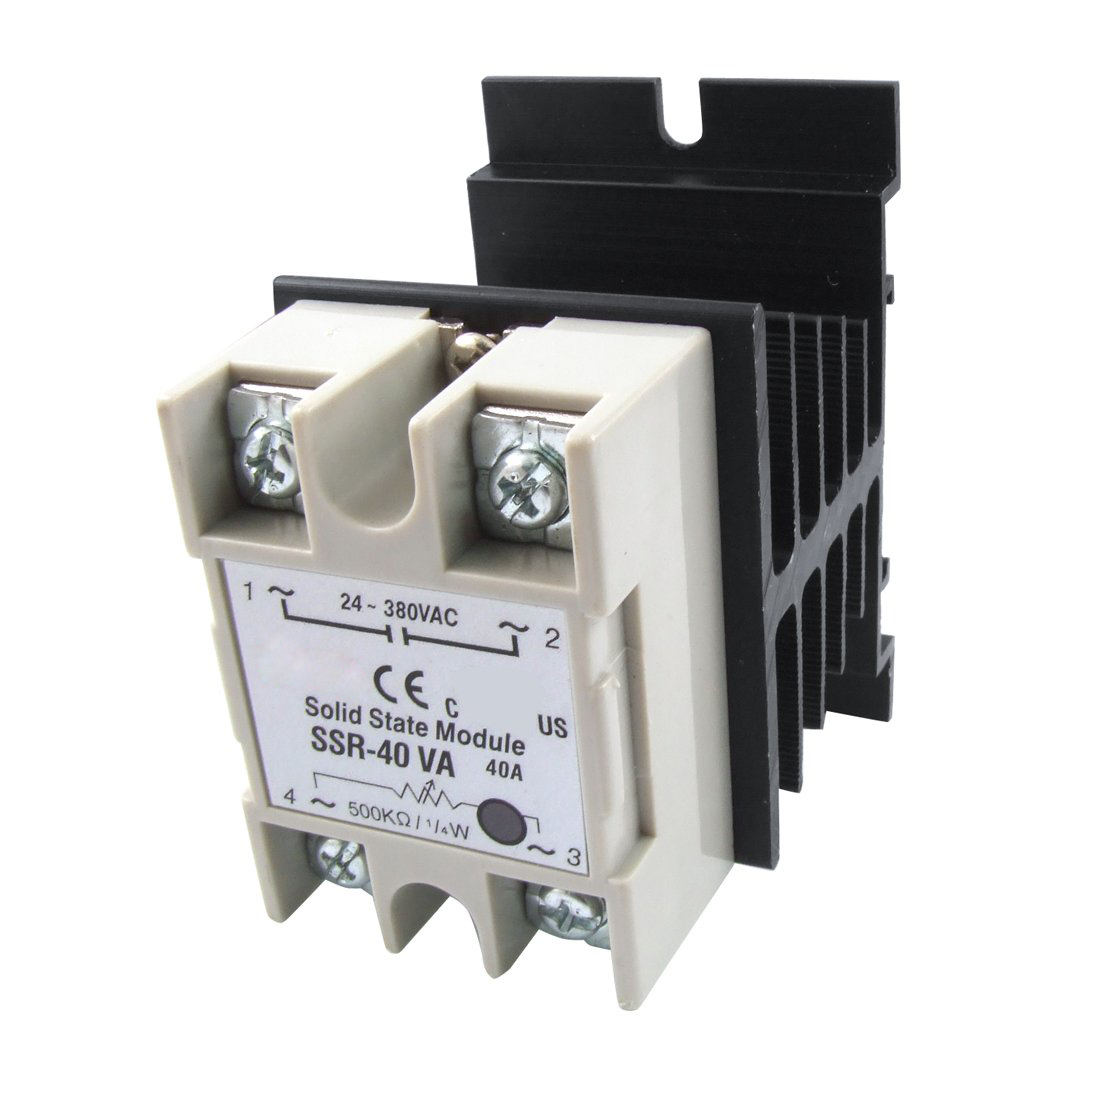 цена на DHDL- VolTage Resistance Regulator Solid State Relay SSR 40A 24-380V AC w Heat SInk